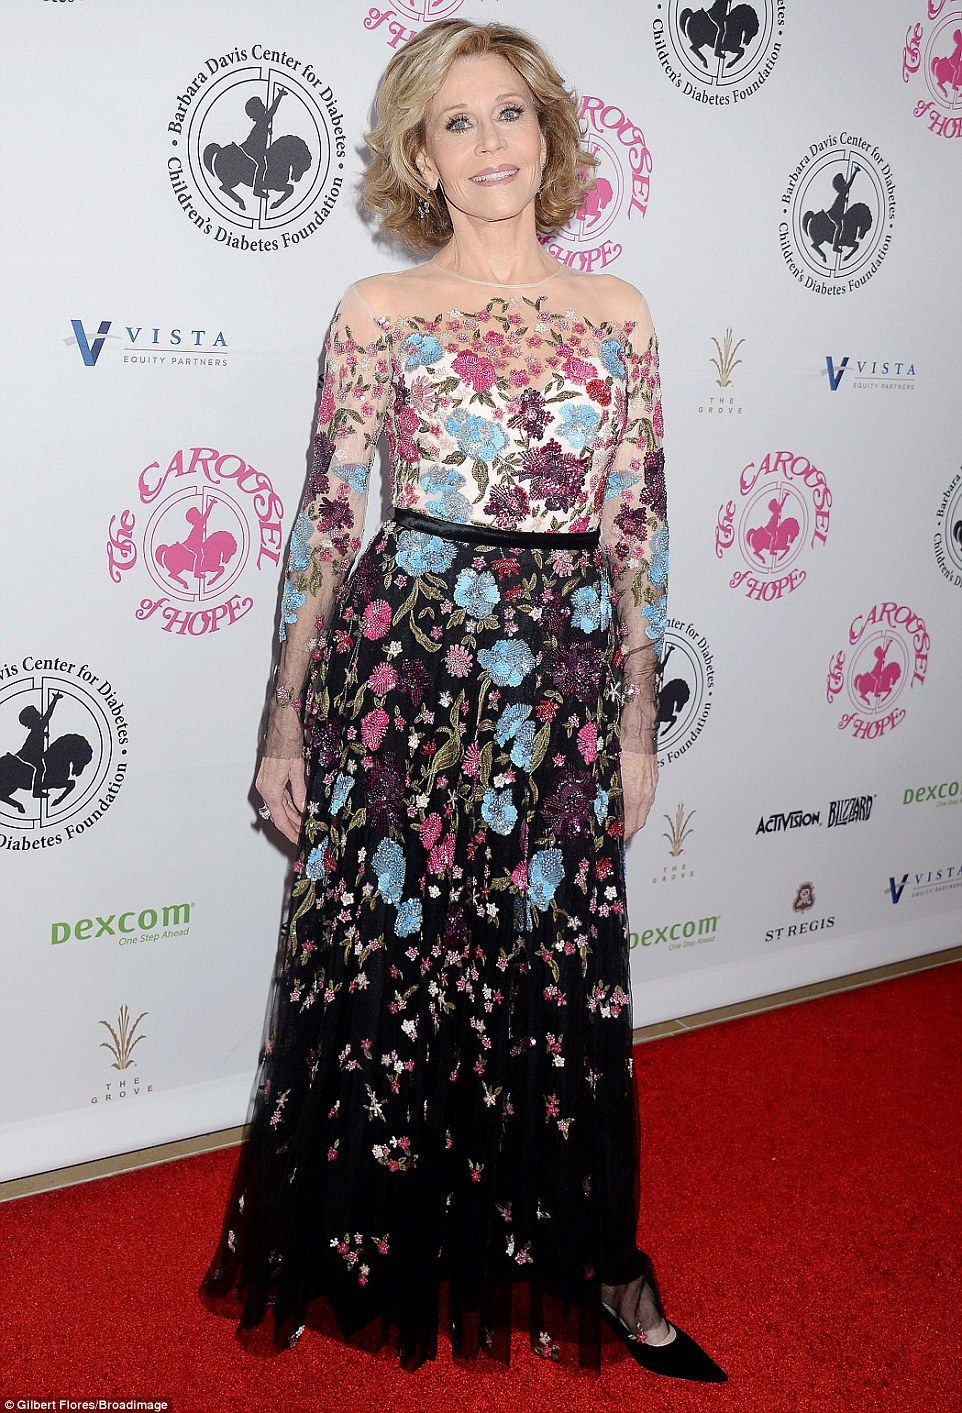 Jane Fonda, 76, looked spectacular in a floral applique dress at the event